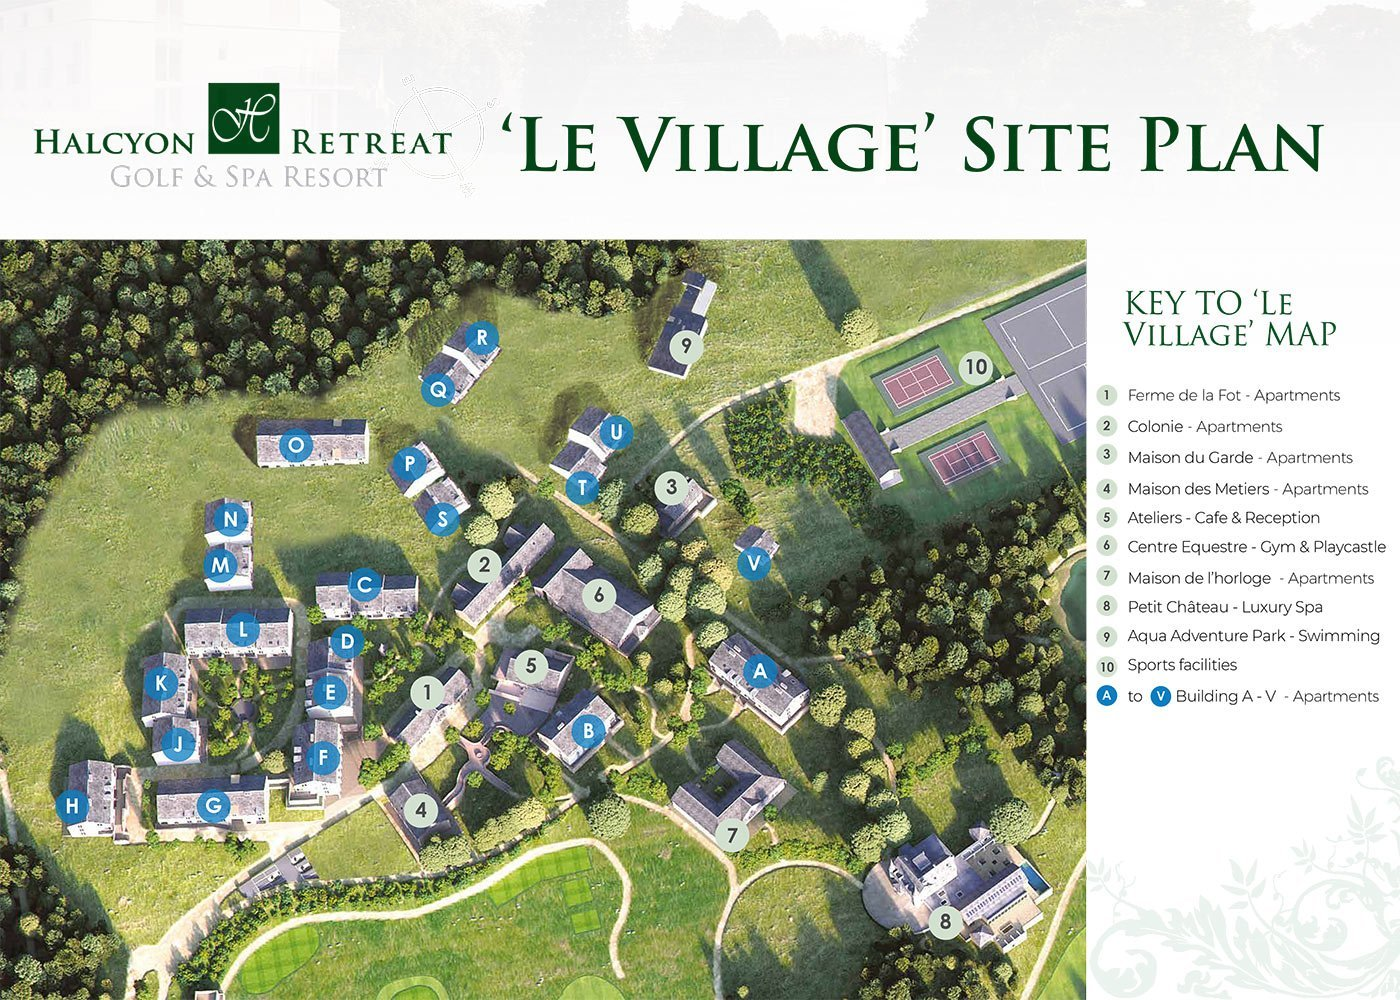 floor plan le village village with proceeds studios and apartments with rental guarantee carefree investing nouvelle aquitaine france